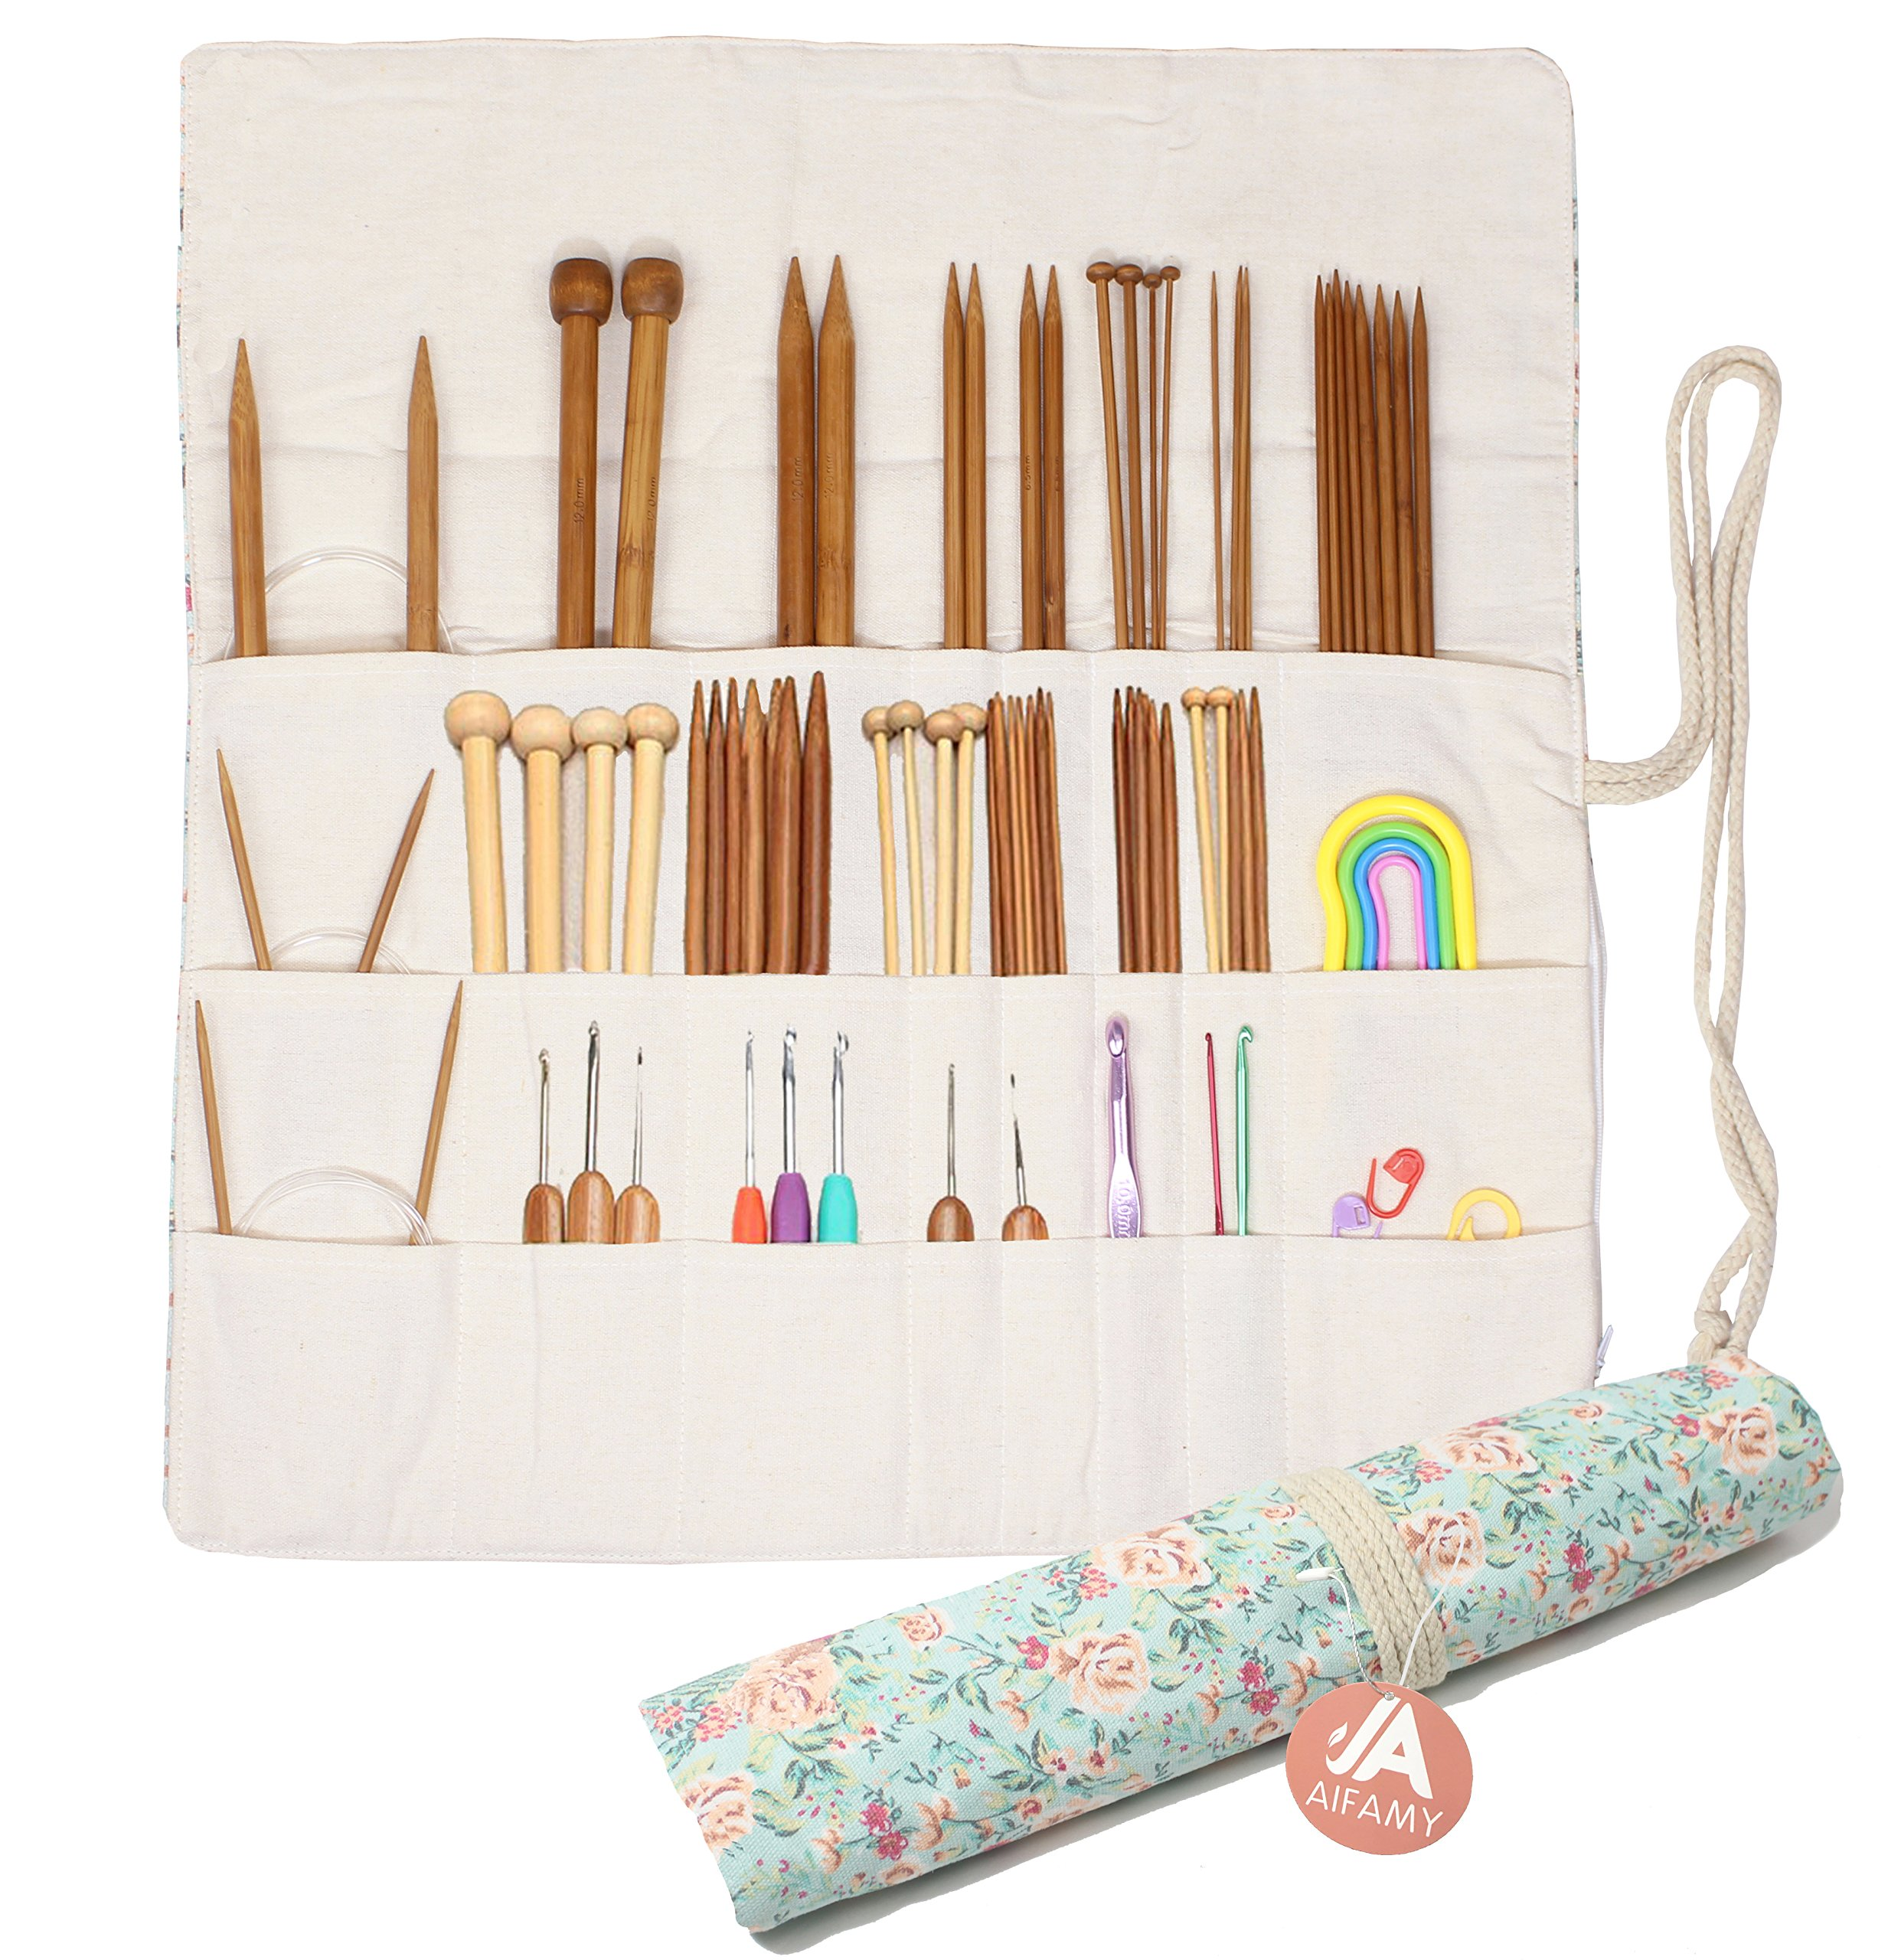 Lemon NO Accessories Included Pacmaxi Knitting Needles Organizer Foldable Knitting Needles Storage Case Up to 14 Inch Rolling Knitting Needles Holder for Straight and Circular Knitting Needles